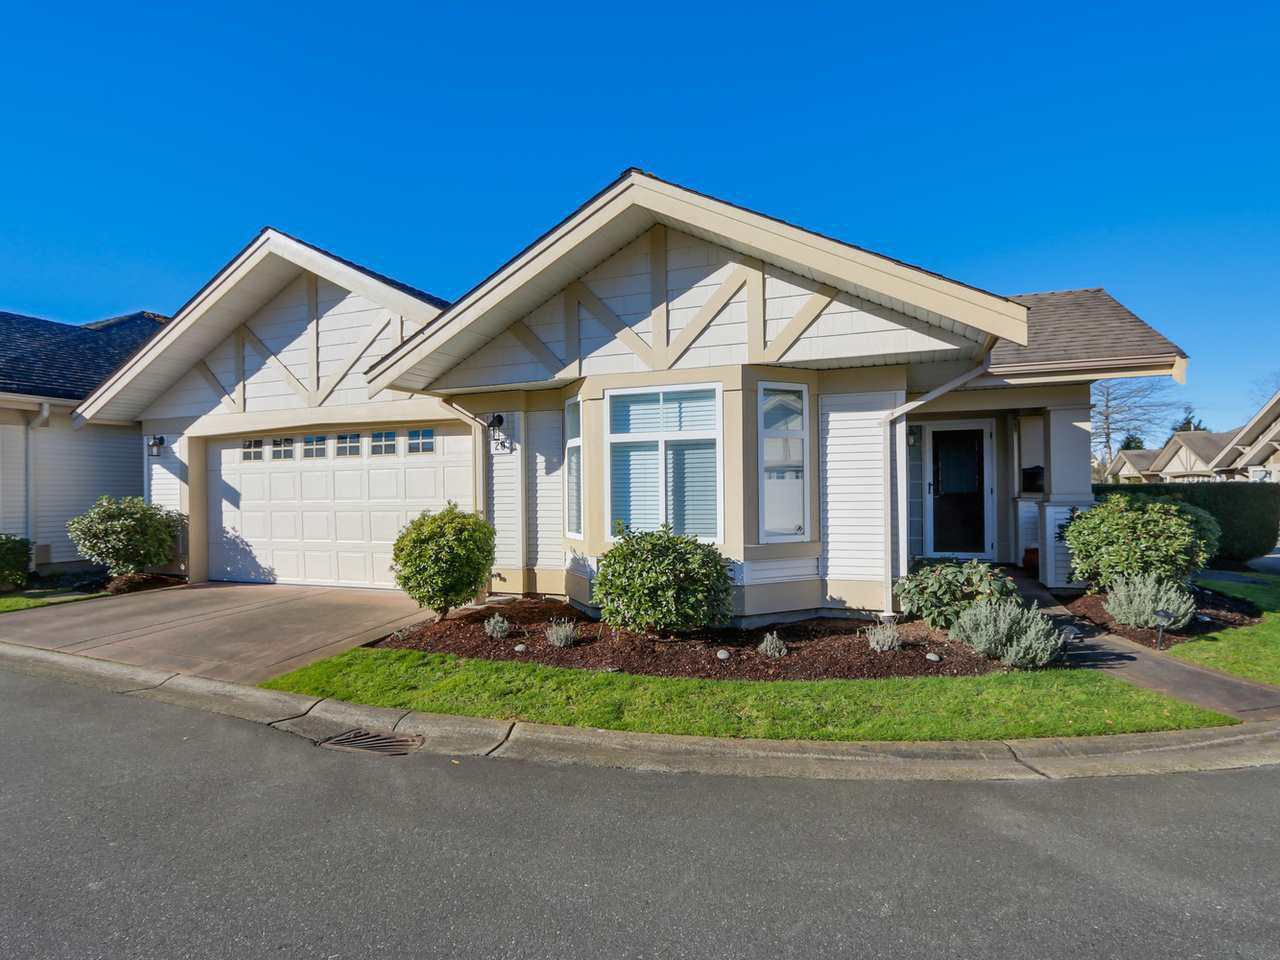 """Main Photo: 20 8555 209 Street in Langley: Walnut Grove Townhouse for sale in """"AUTUMN WOOD"""" : MLS®# R2038224"""